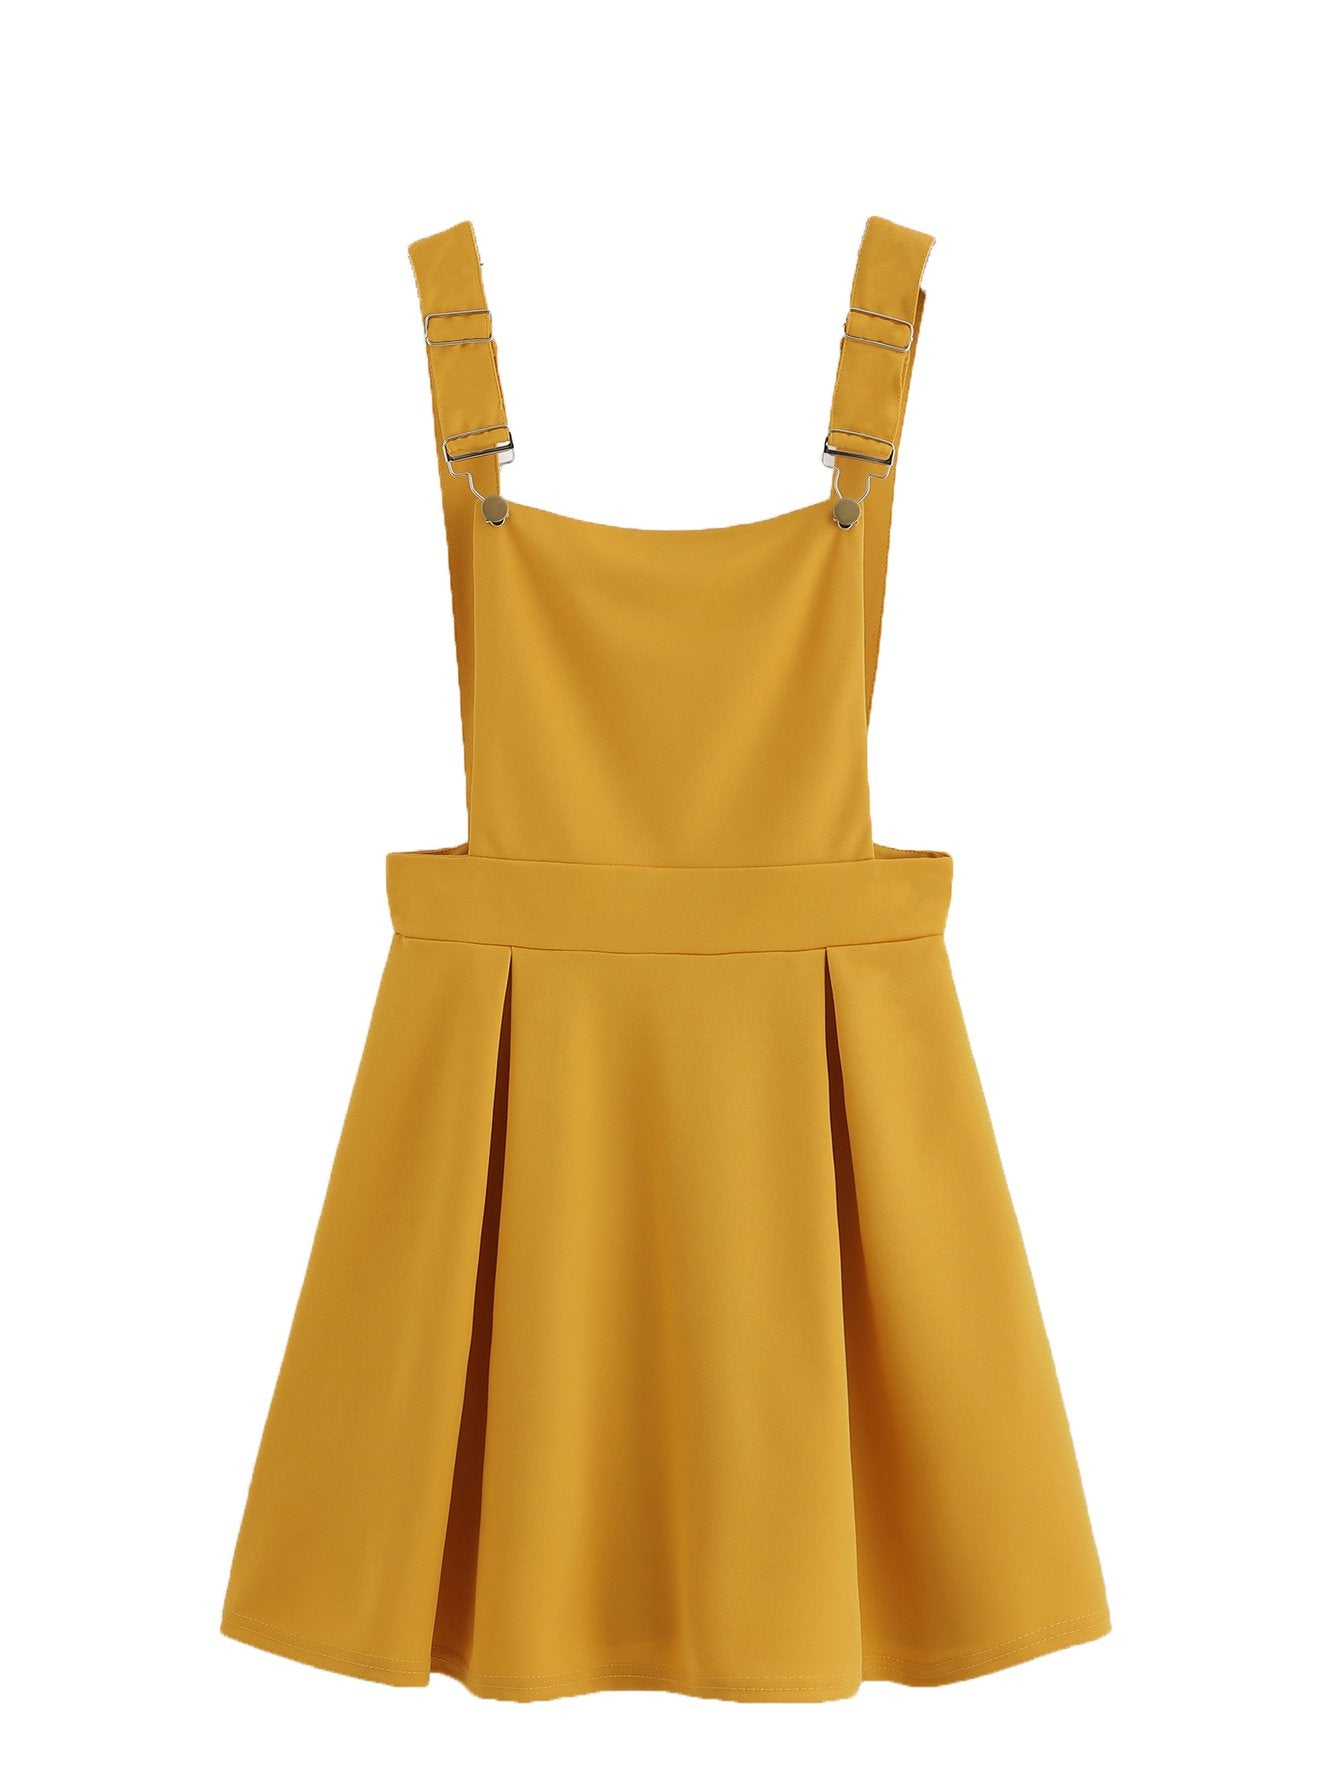 Romwe Womens Cute A Line Adjustable Straps Pleated Mini Overall Pinafore Dress